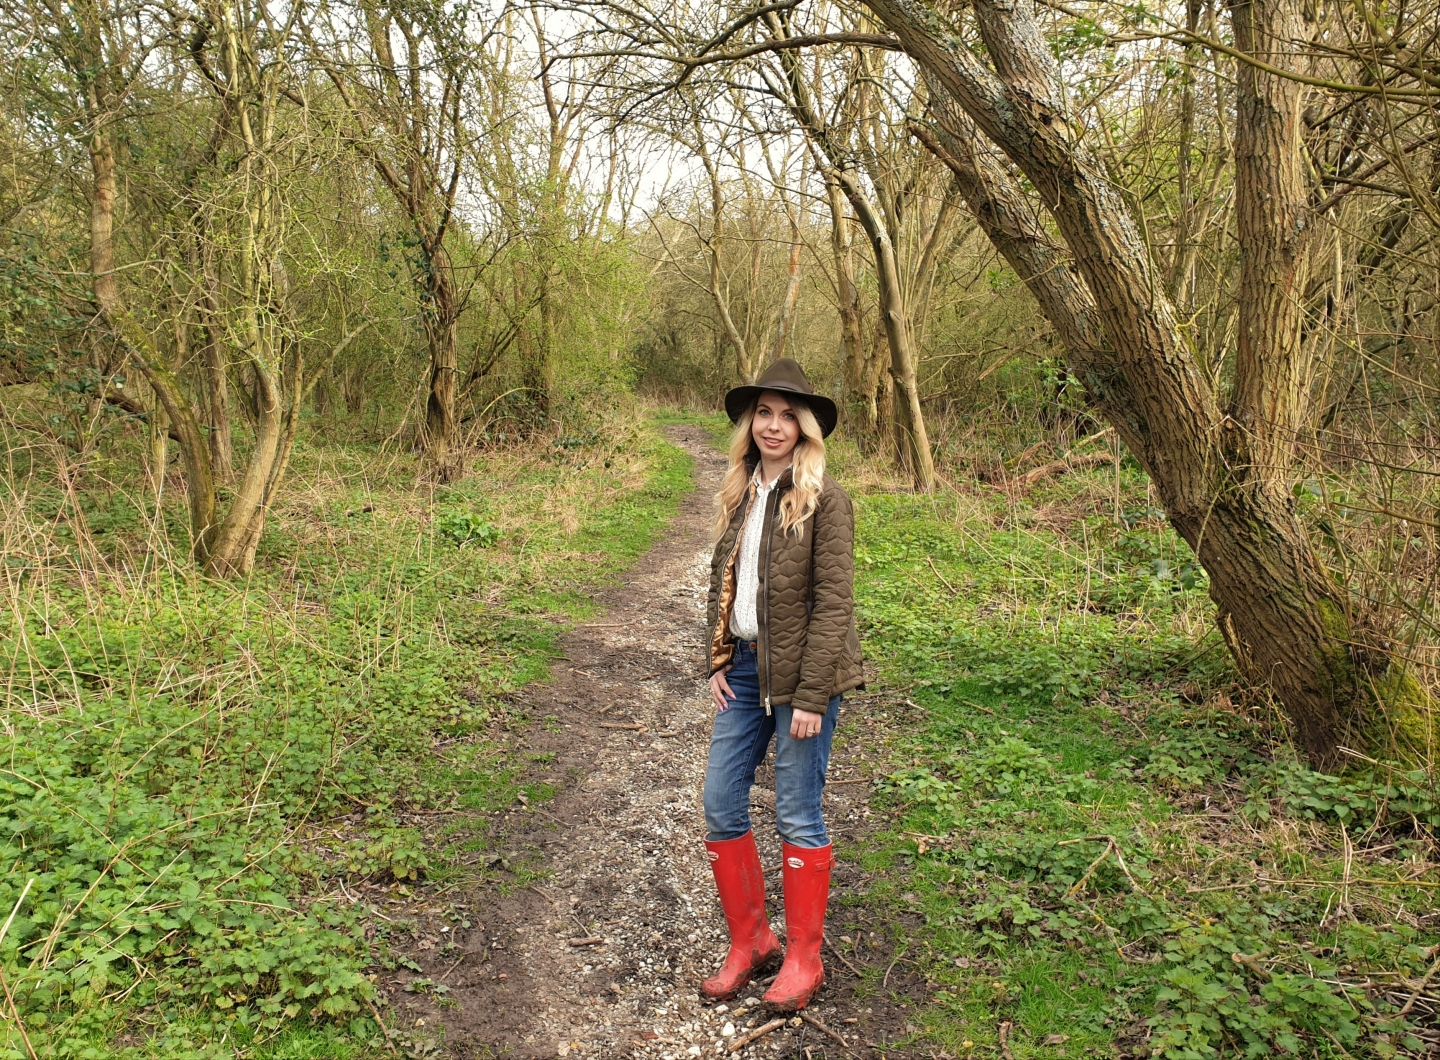 Rydale quilted jacket and Danby felt hat on a woodland walk